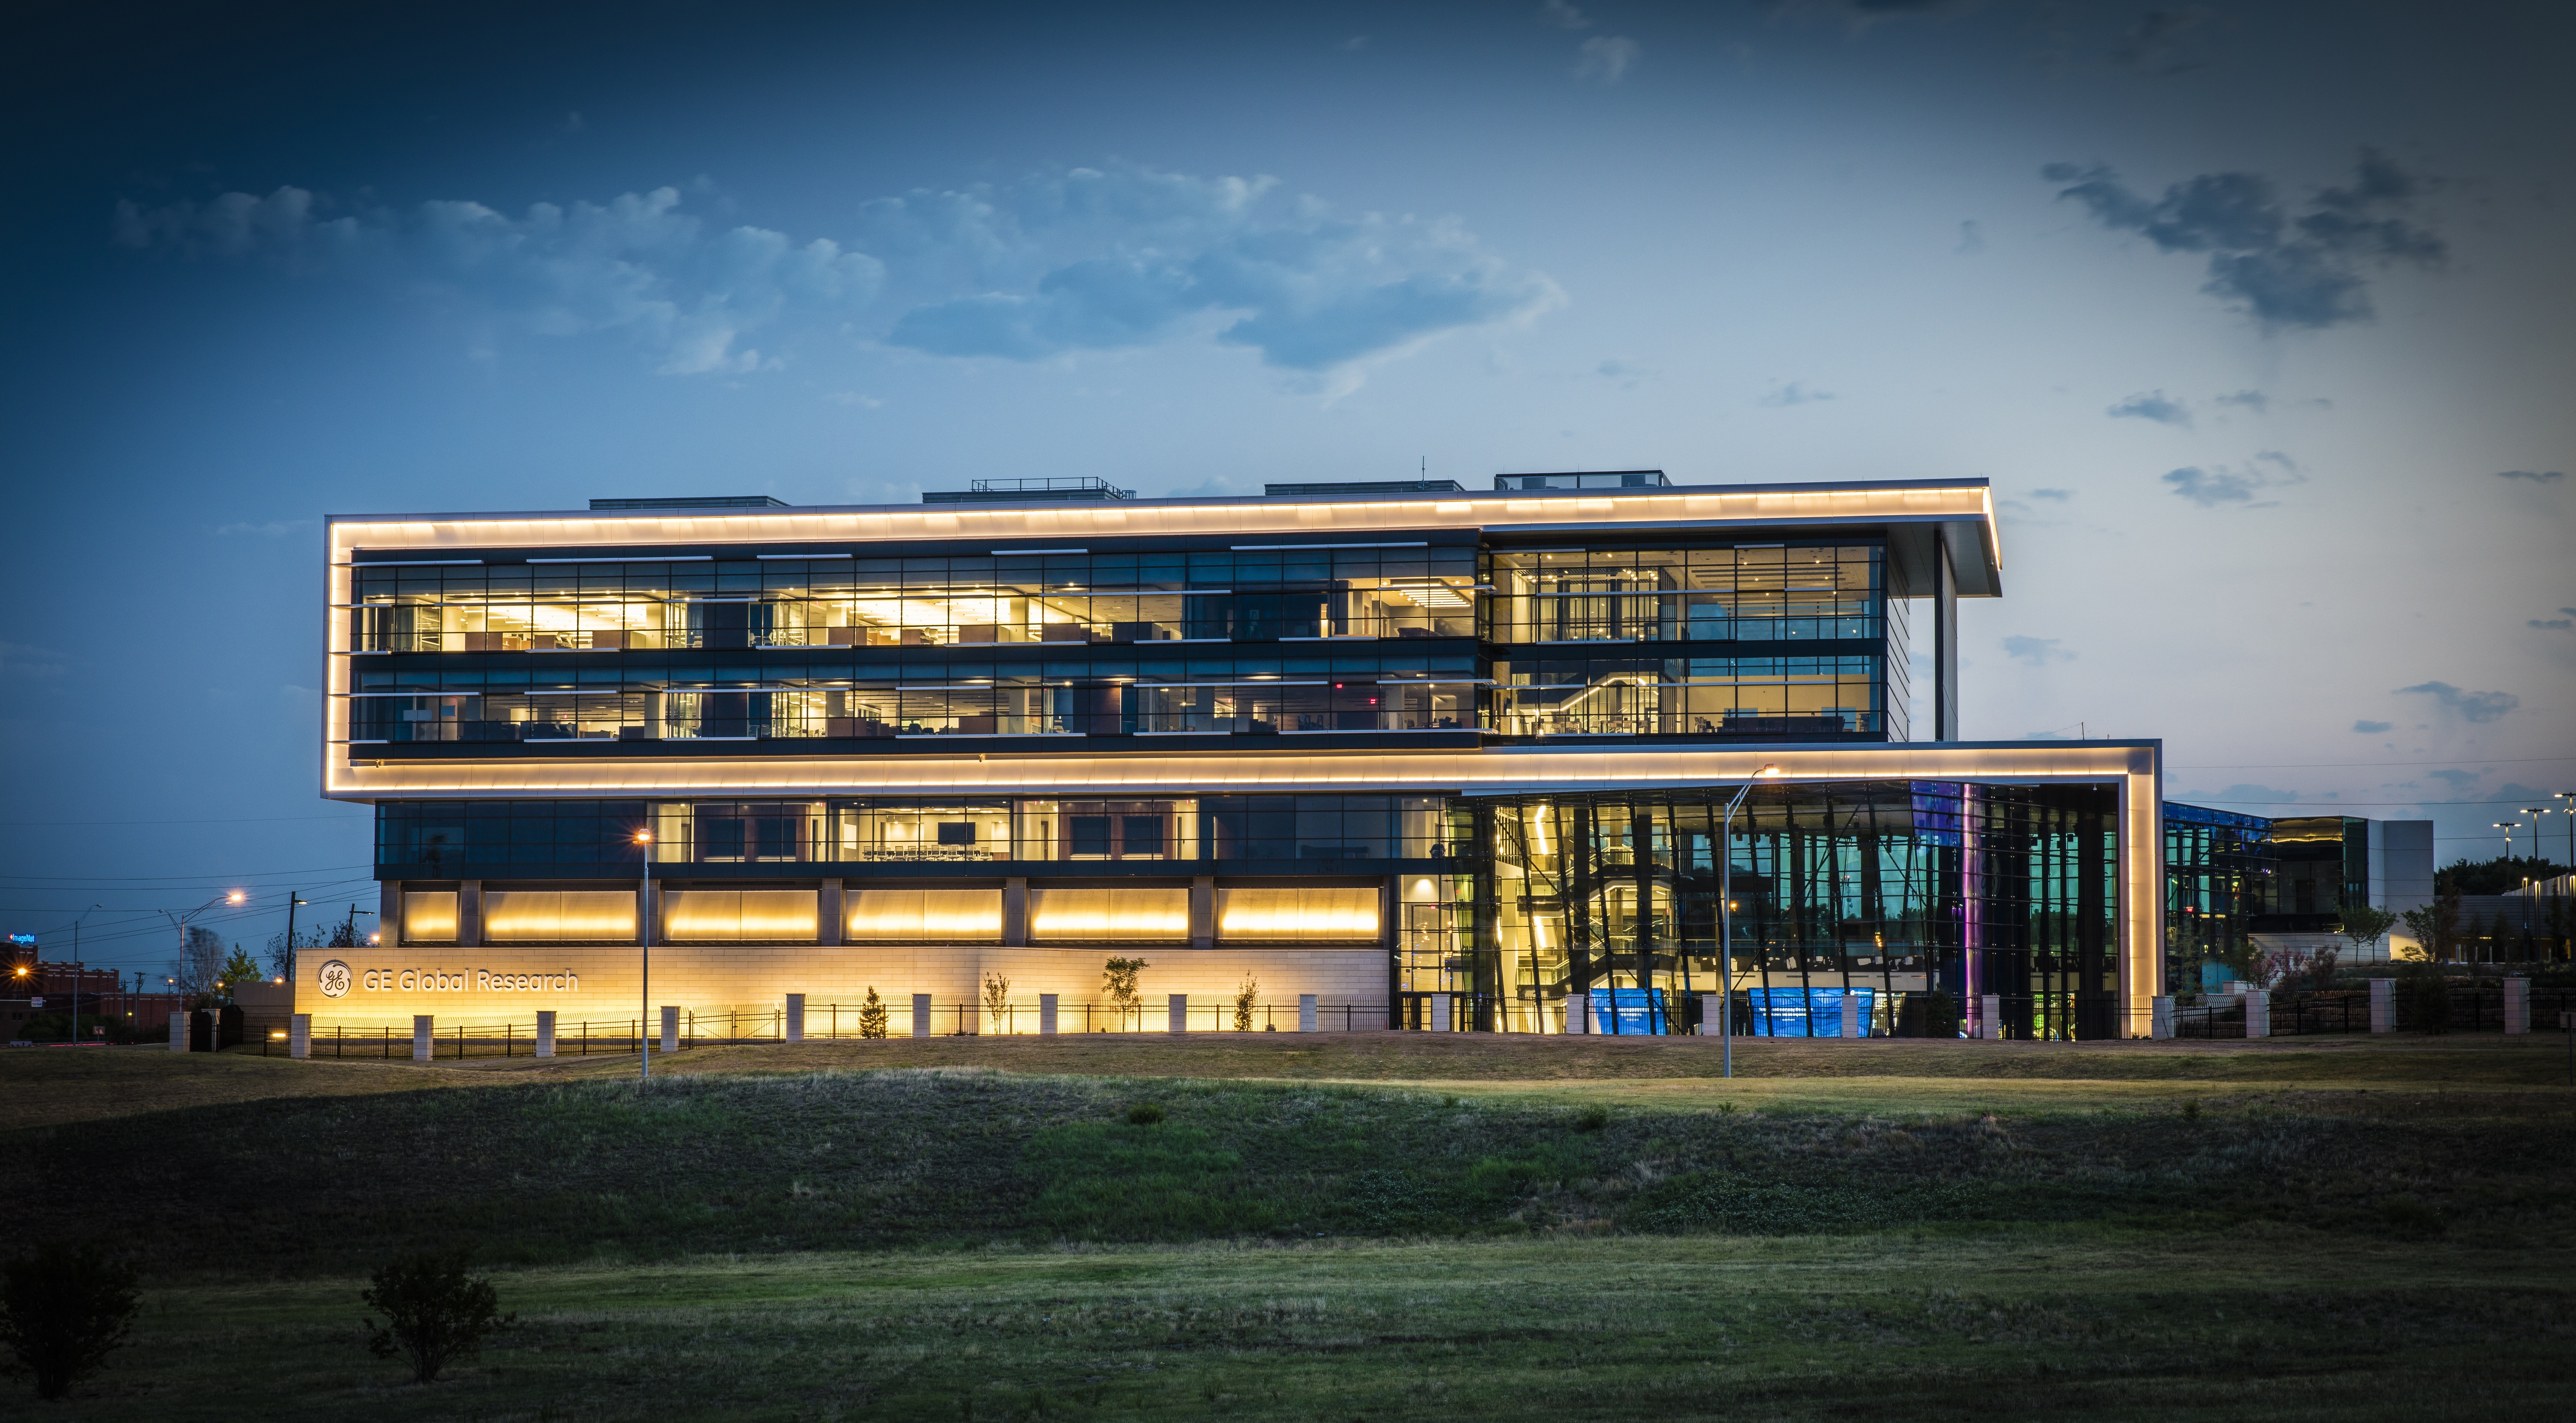 GE's new Oil & Gas Technology Center in Oklahoma City, Oklahoma. Part of GE's network of 10 global research centers, it is a collaborative center dedicated to accelerating technology development for the Oil & Gas industry. (Photo: Business Wire)